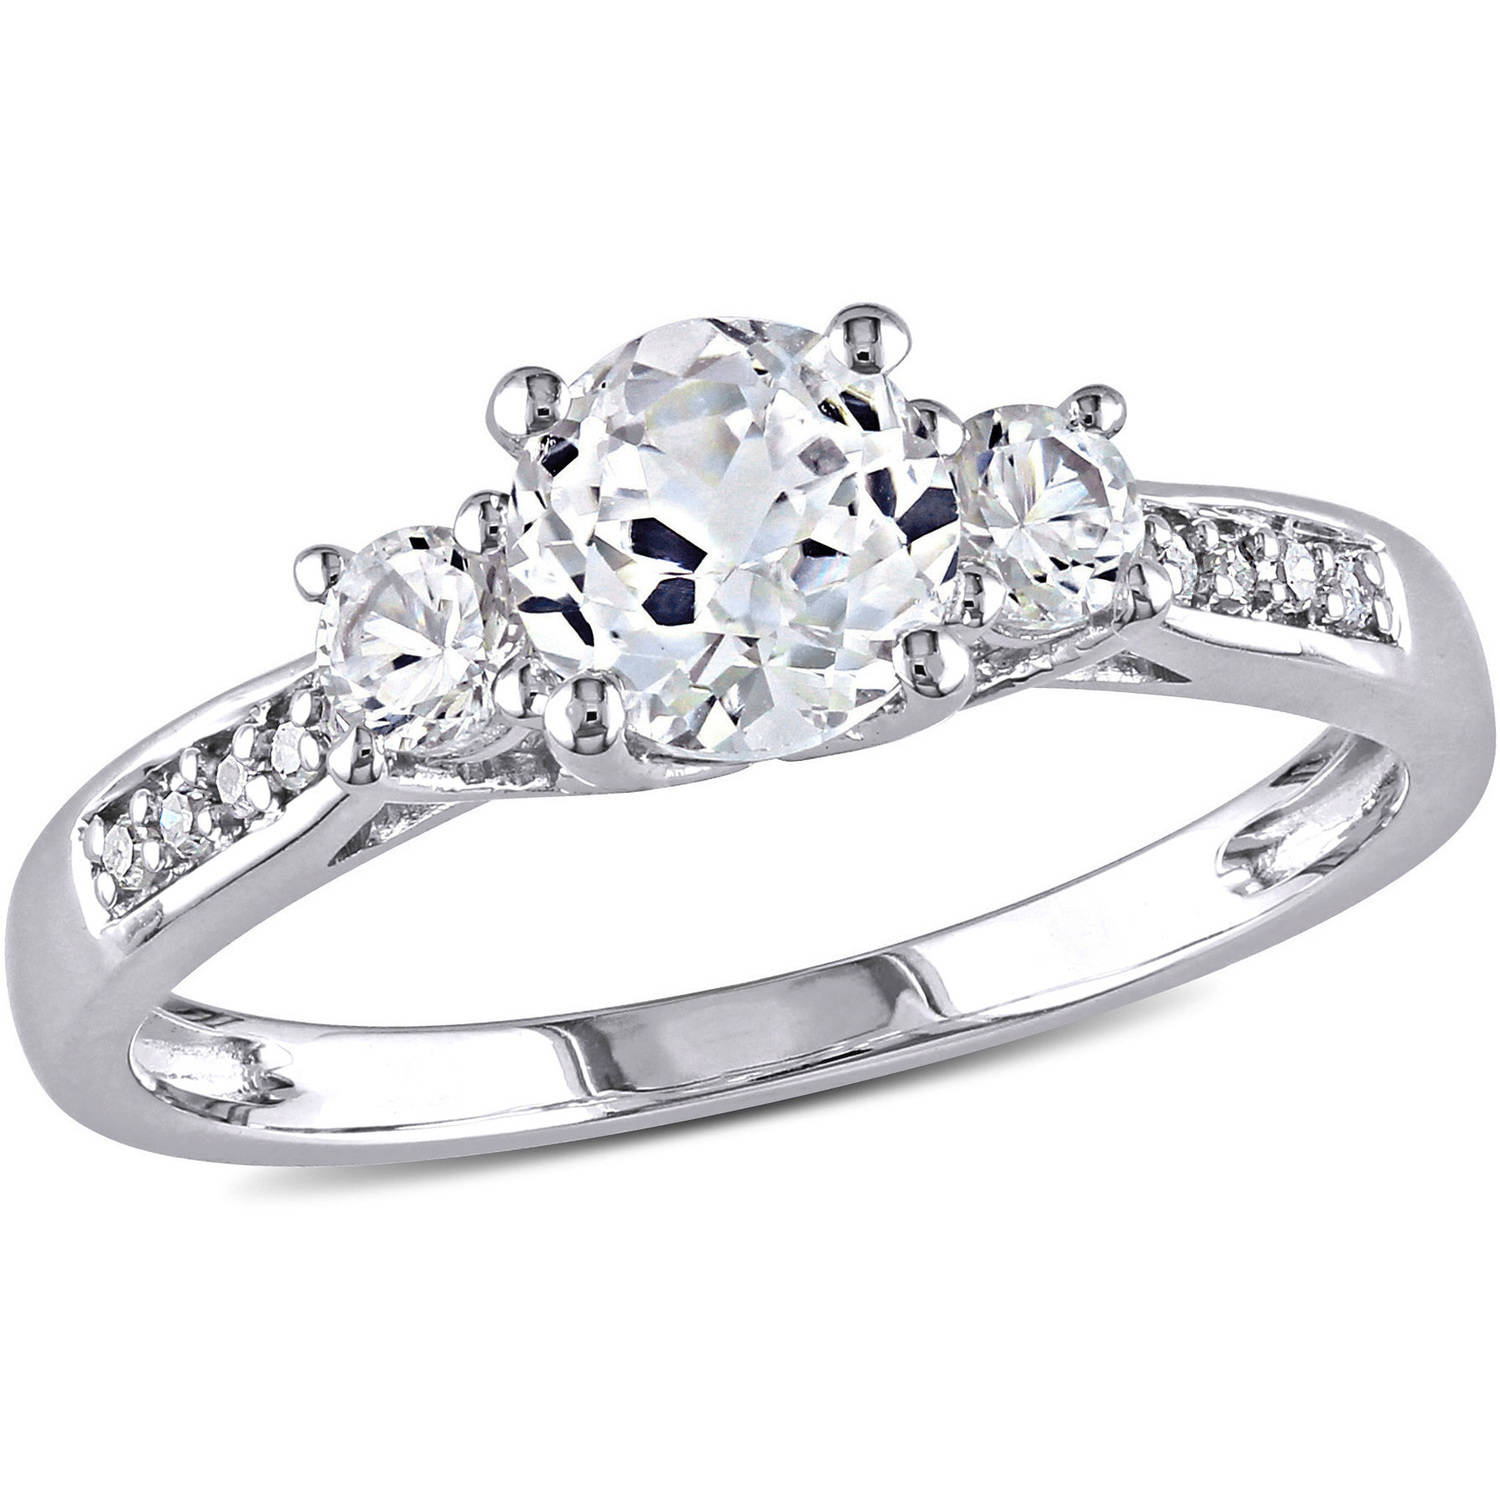 Miabella 1-1/3 Carat T.G.W. Created White Sapphire and Diamond-Accent 10kt White Gold Three Stone Engagement Ring